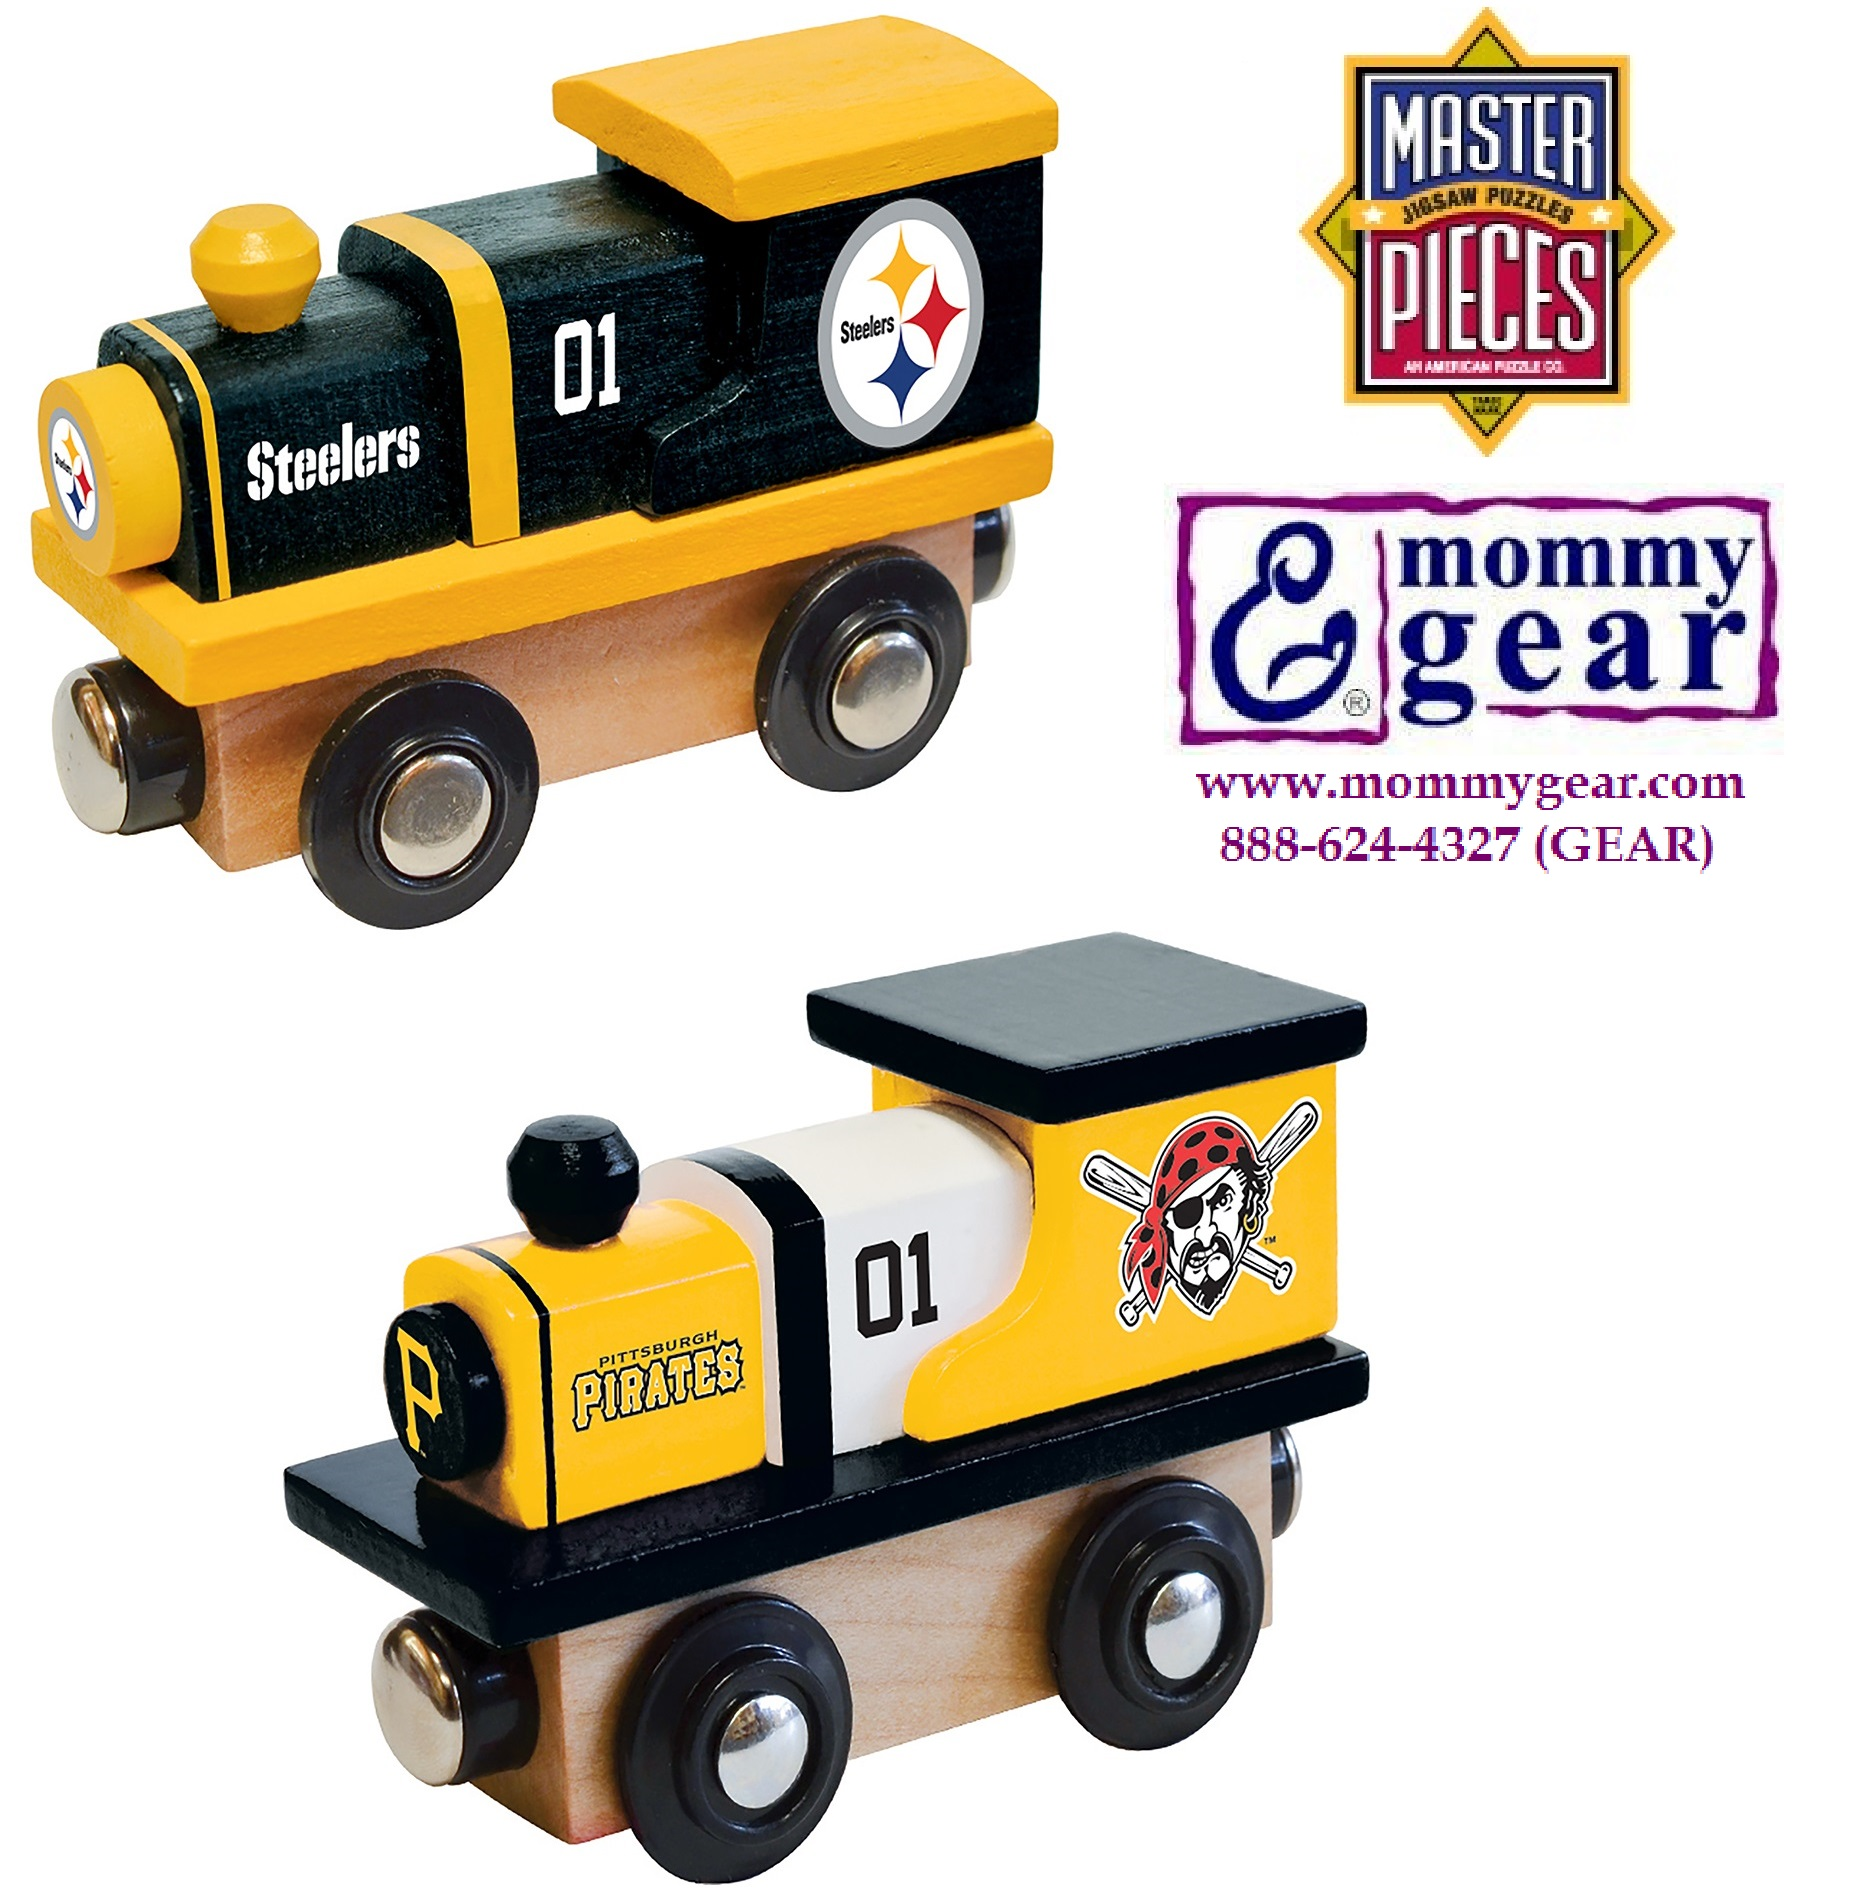 pittsburgh-wooden-train-steelers-pirates